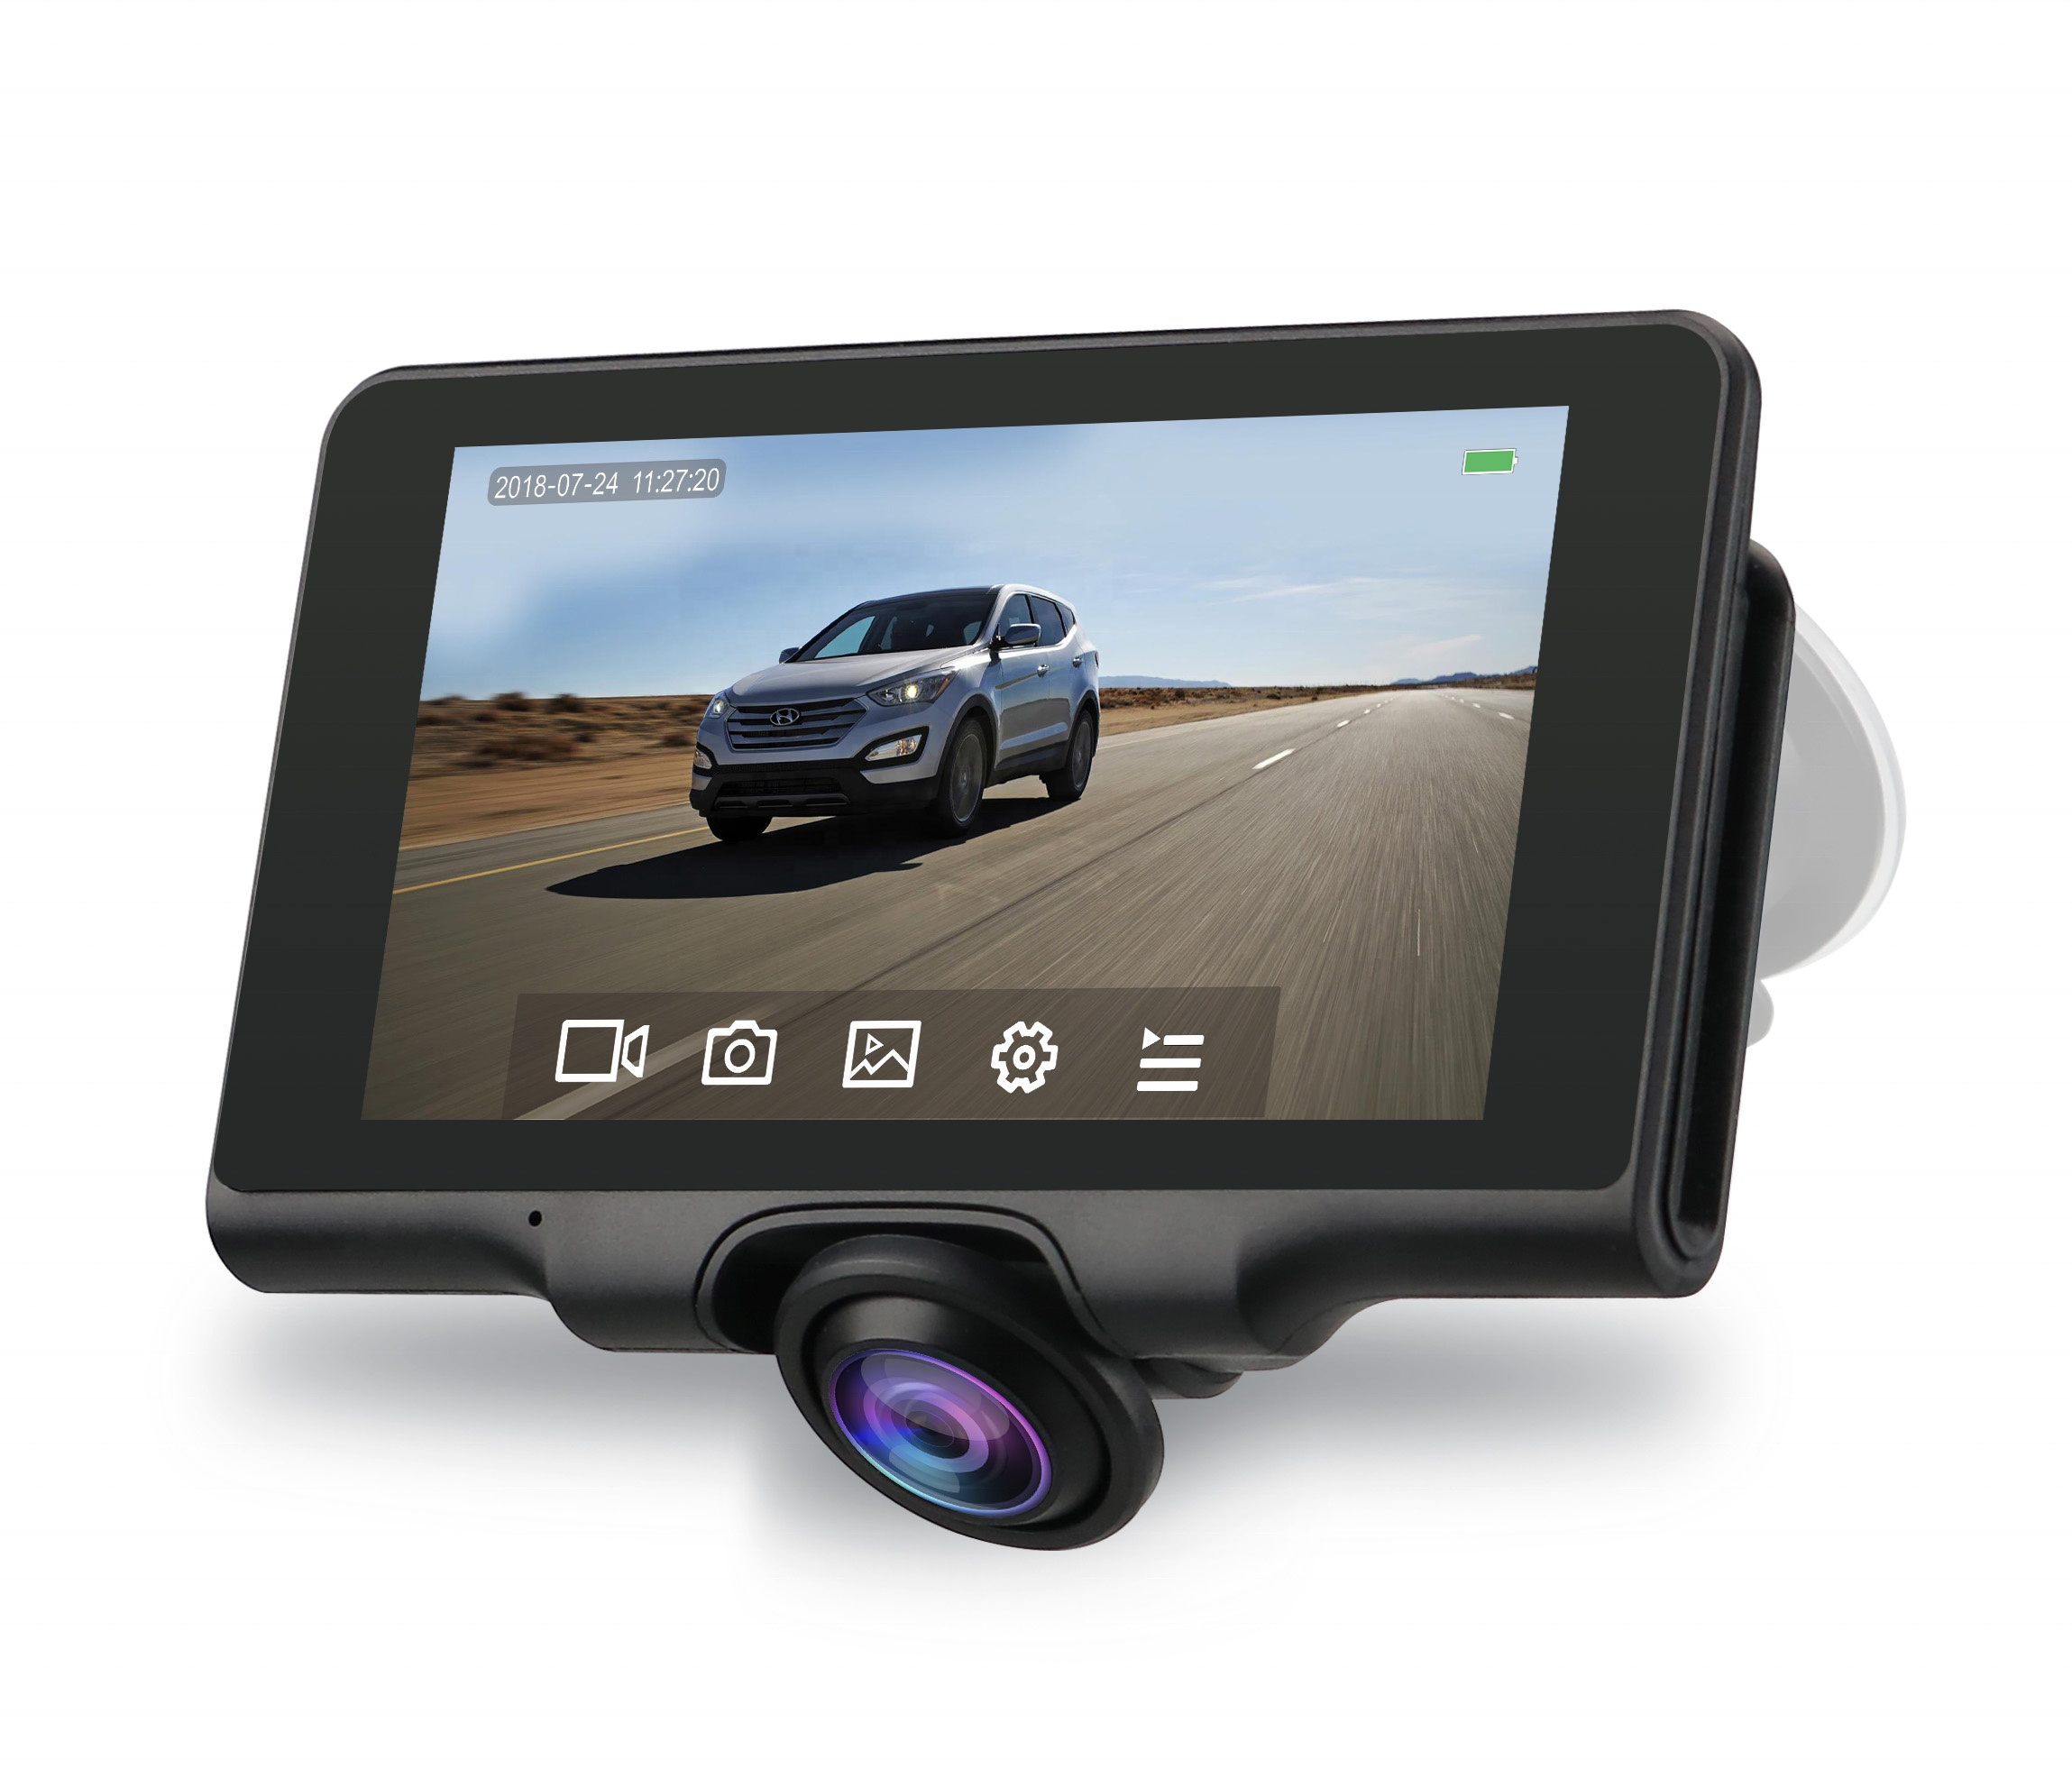 ALLAMODA 360 view car kamerasystem android bedienungsanleitung full hd lens1080p autokamera car dvr dash camera